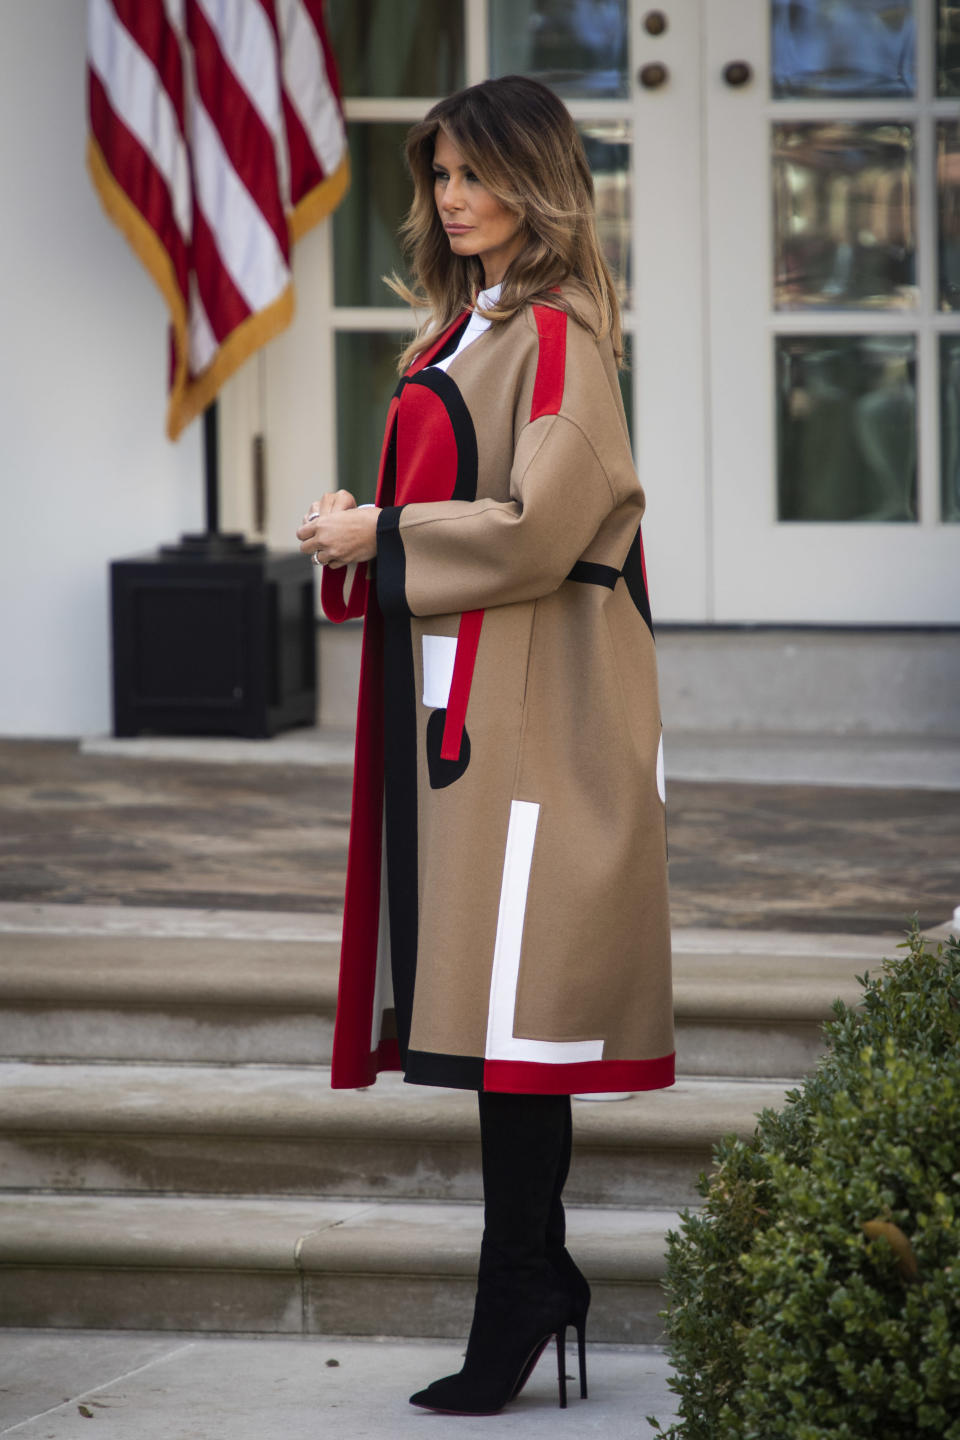 The First Lady wore a statement, $9000 (£7000) coat to celebrate the traditional National Thanksgiving Turkey Presentation. The outerwear piece was made by Dior – one of Melania's go-to labels. [Photo: Getty]